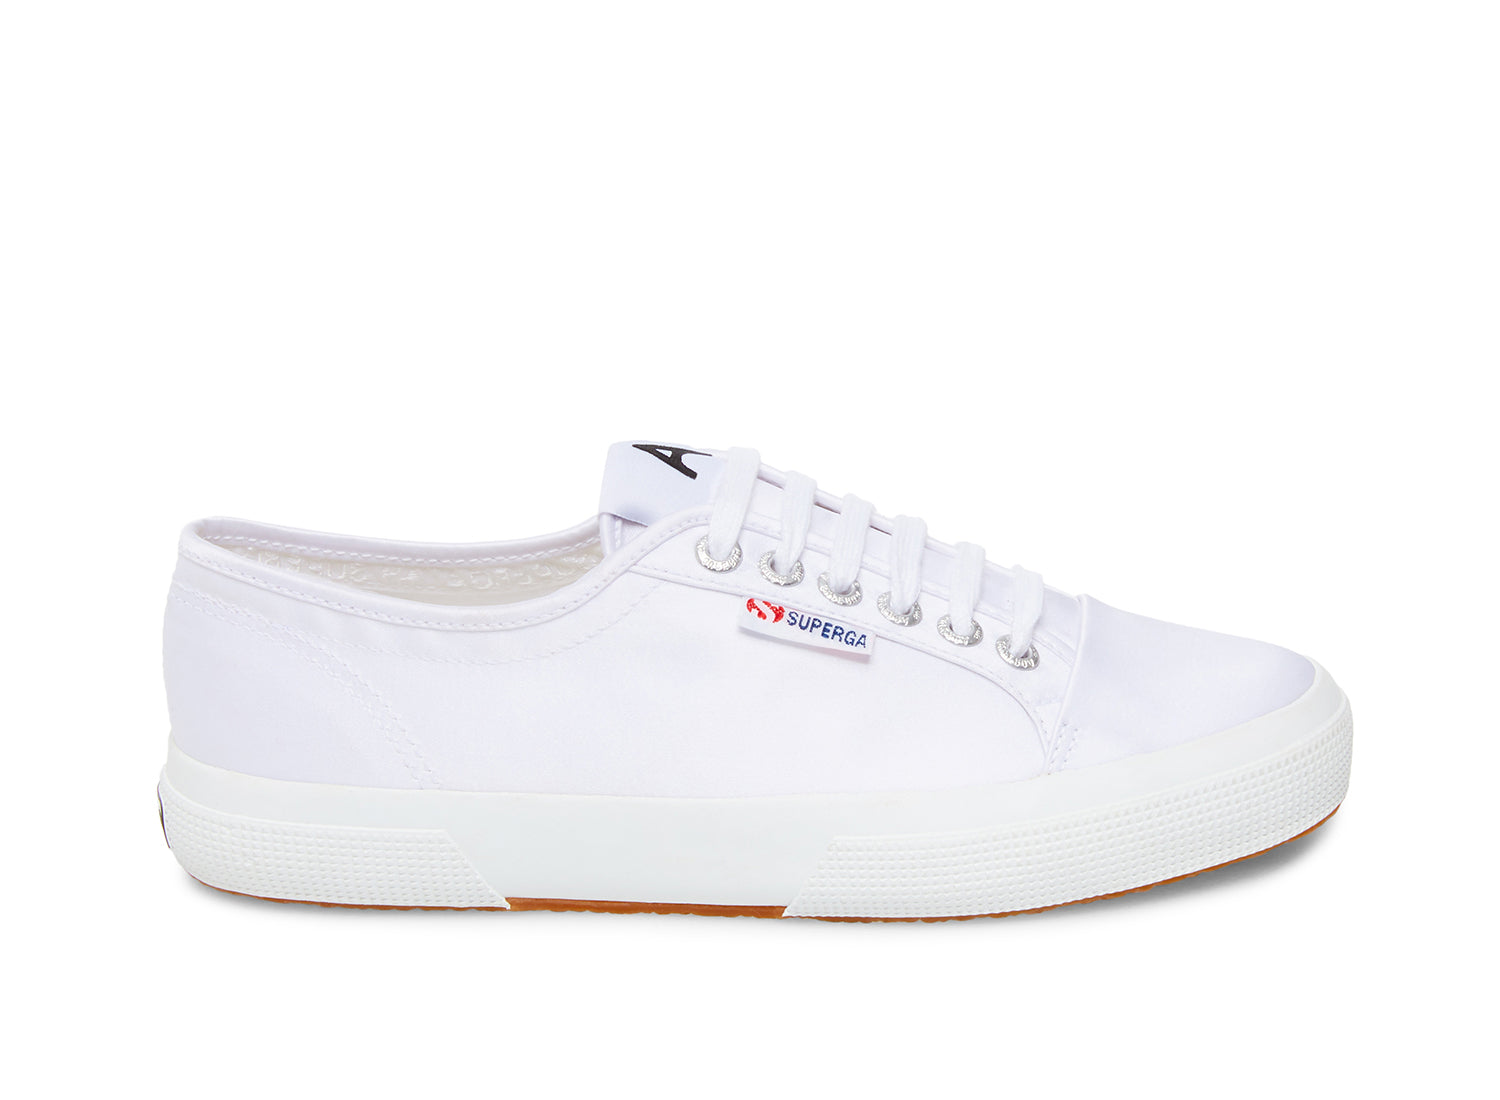 Superga 2492 satinw white side